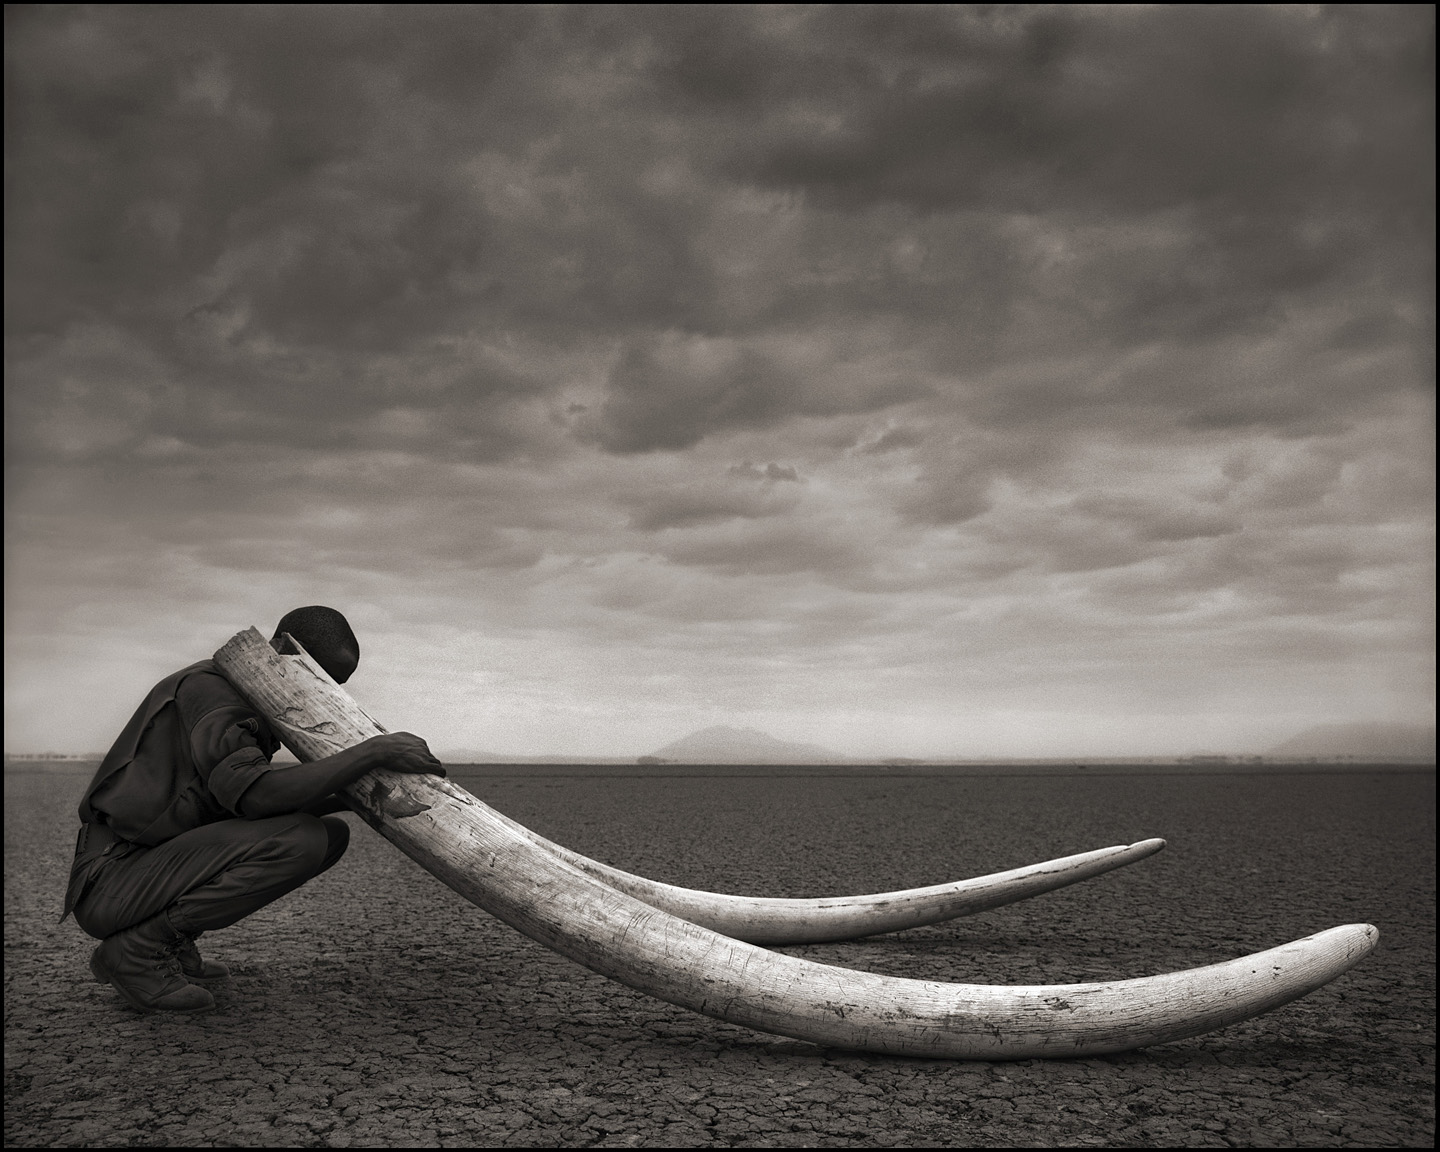 Ranger with Tusks of Killed Elephant